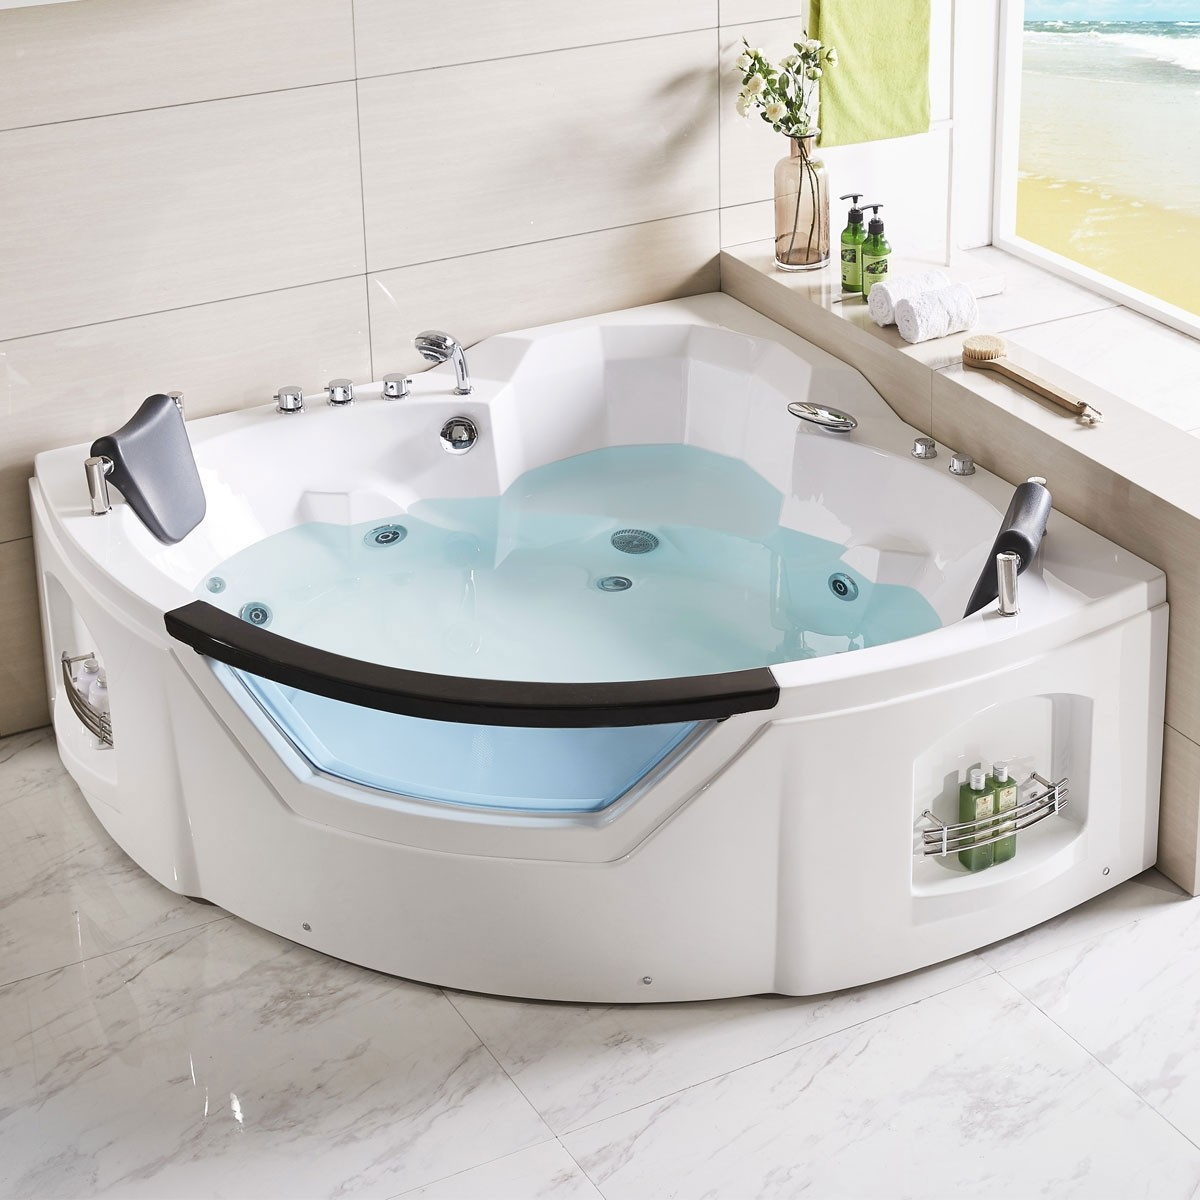 Decoraport 61 x 61 In Whirlpool Tub (DK-Q312N)